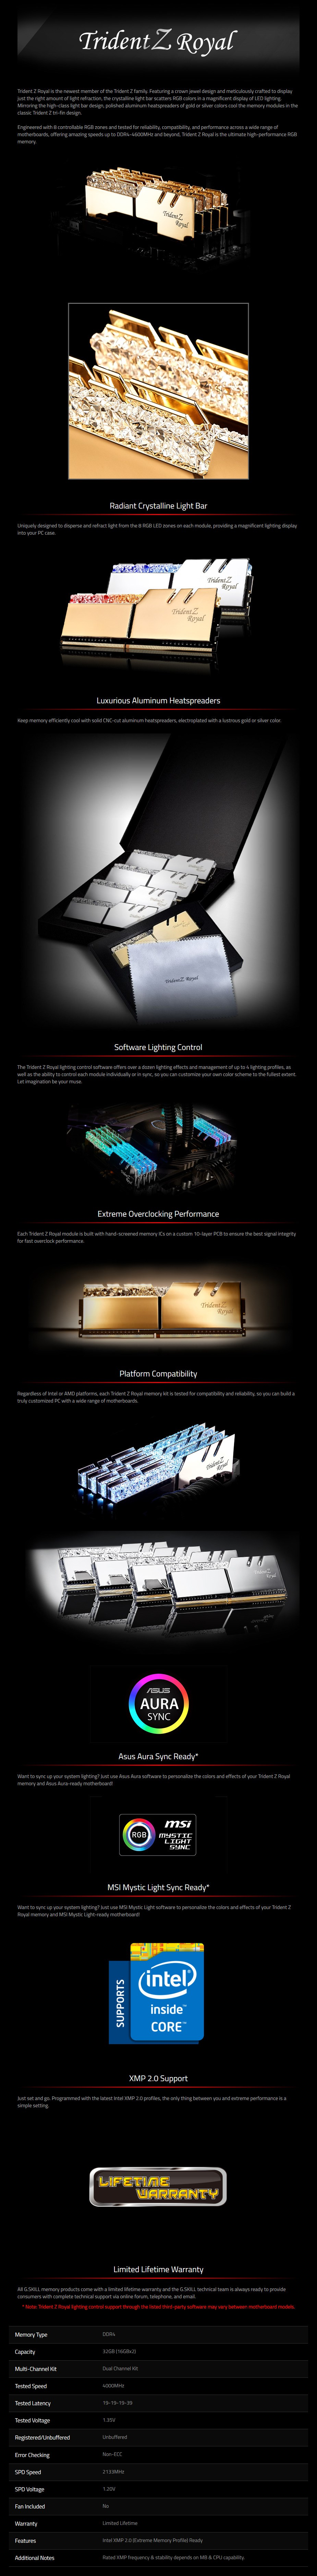 G.SKill Trident Z RGB Royal 32GB (2x 16GB) DDR4 4000MHz Memory - Gold - Desktop Overview 1